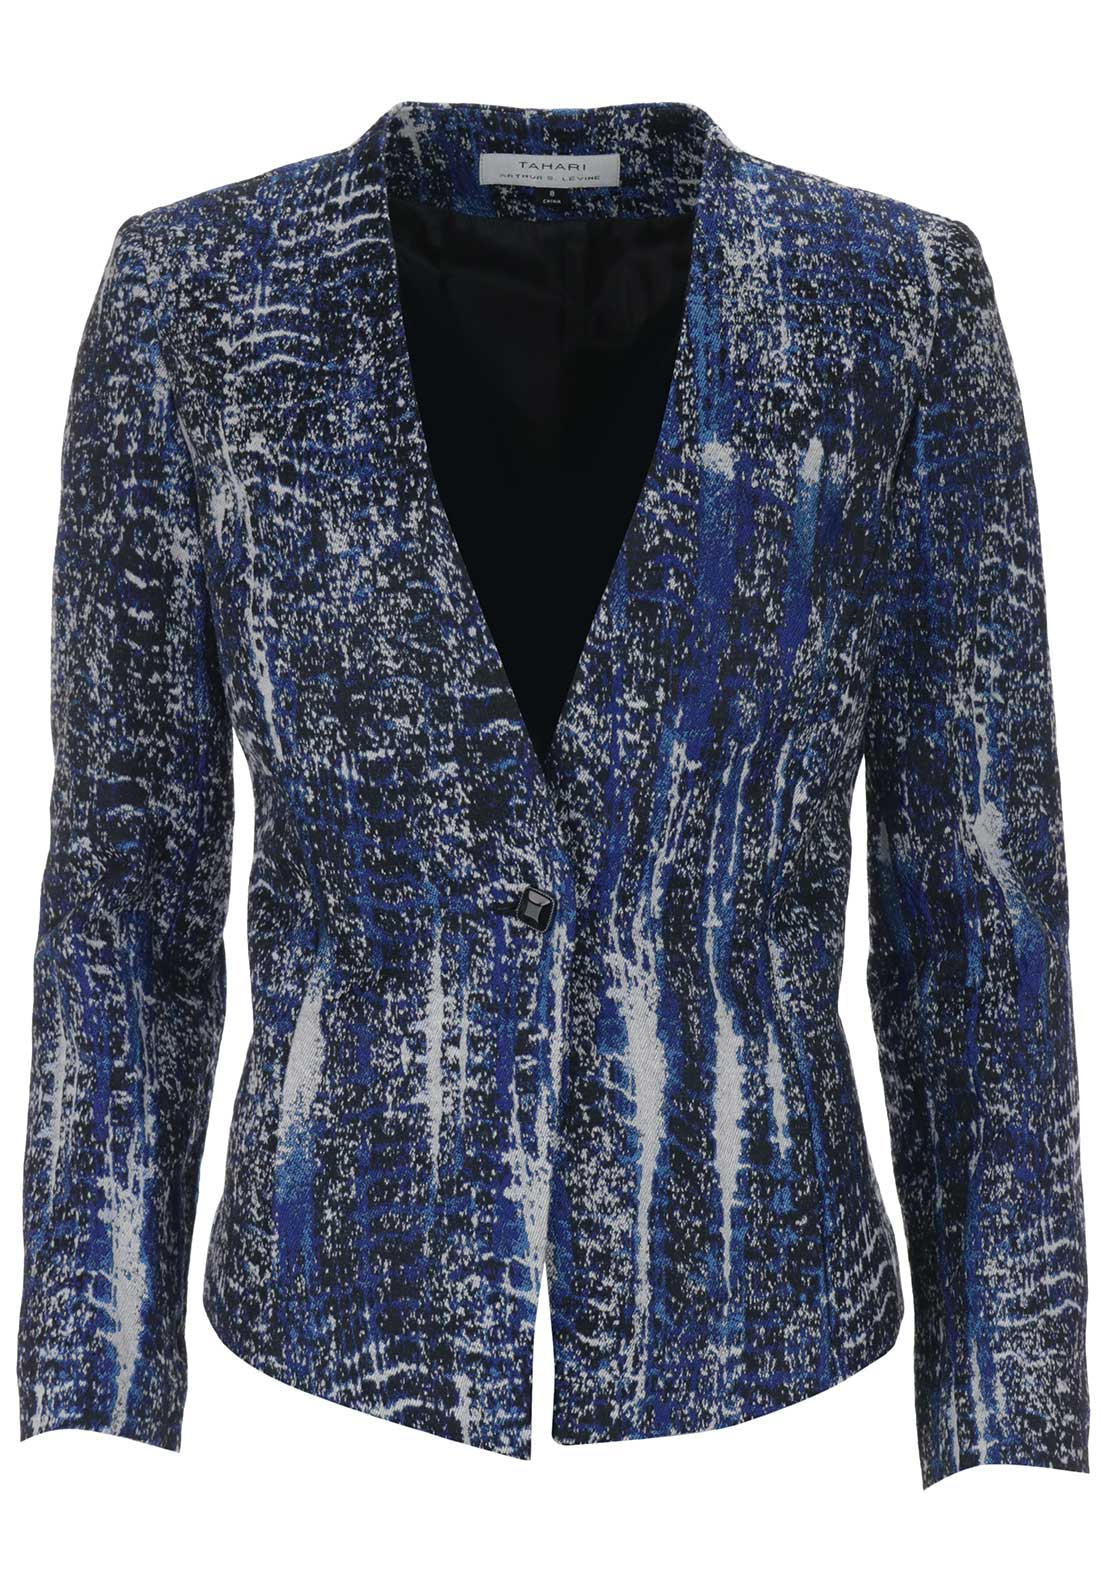 Tahari by Arthur S. Levine Abstract Print Jacket, Blue